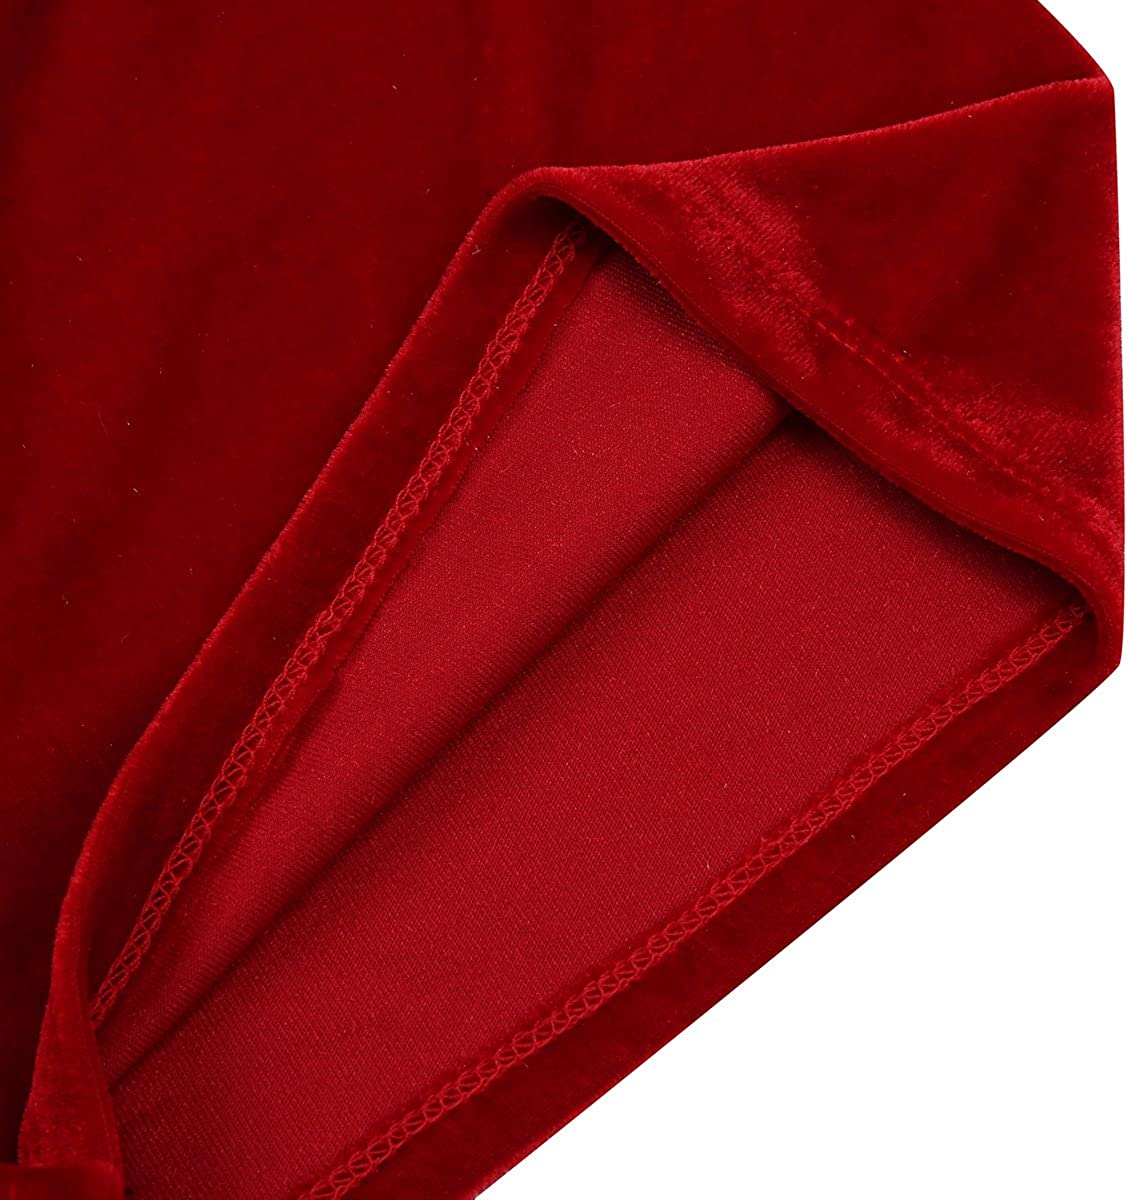 winying Mens Red Velvet Christmas Holiday Santa Claus Cosplay Costume Boxer Shorts Briefs Lingerie Underwear